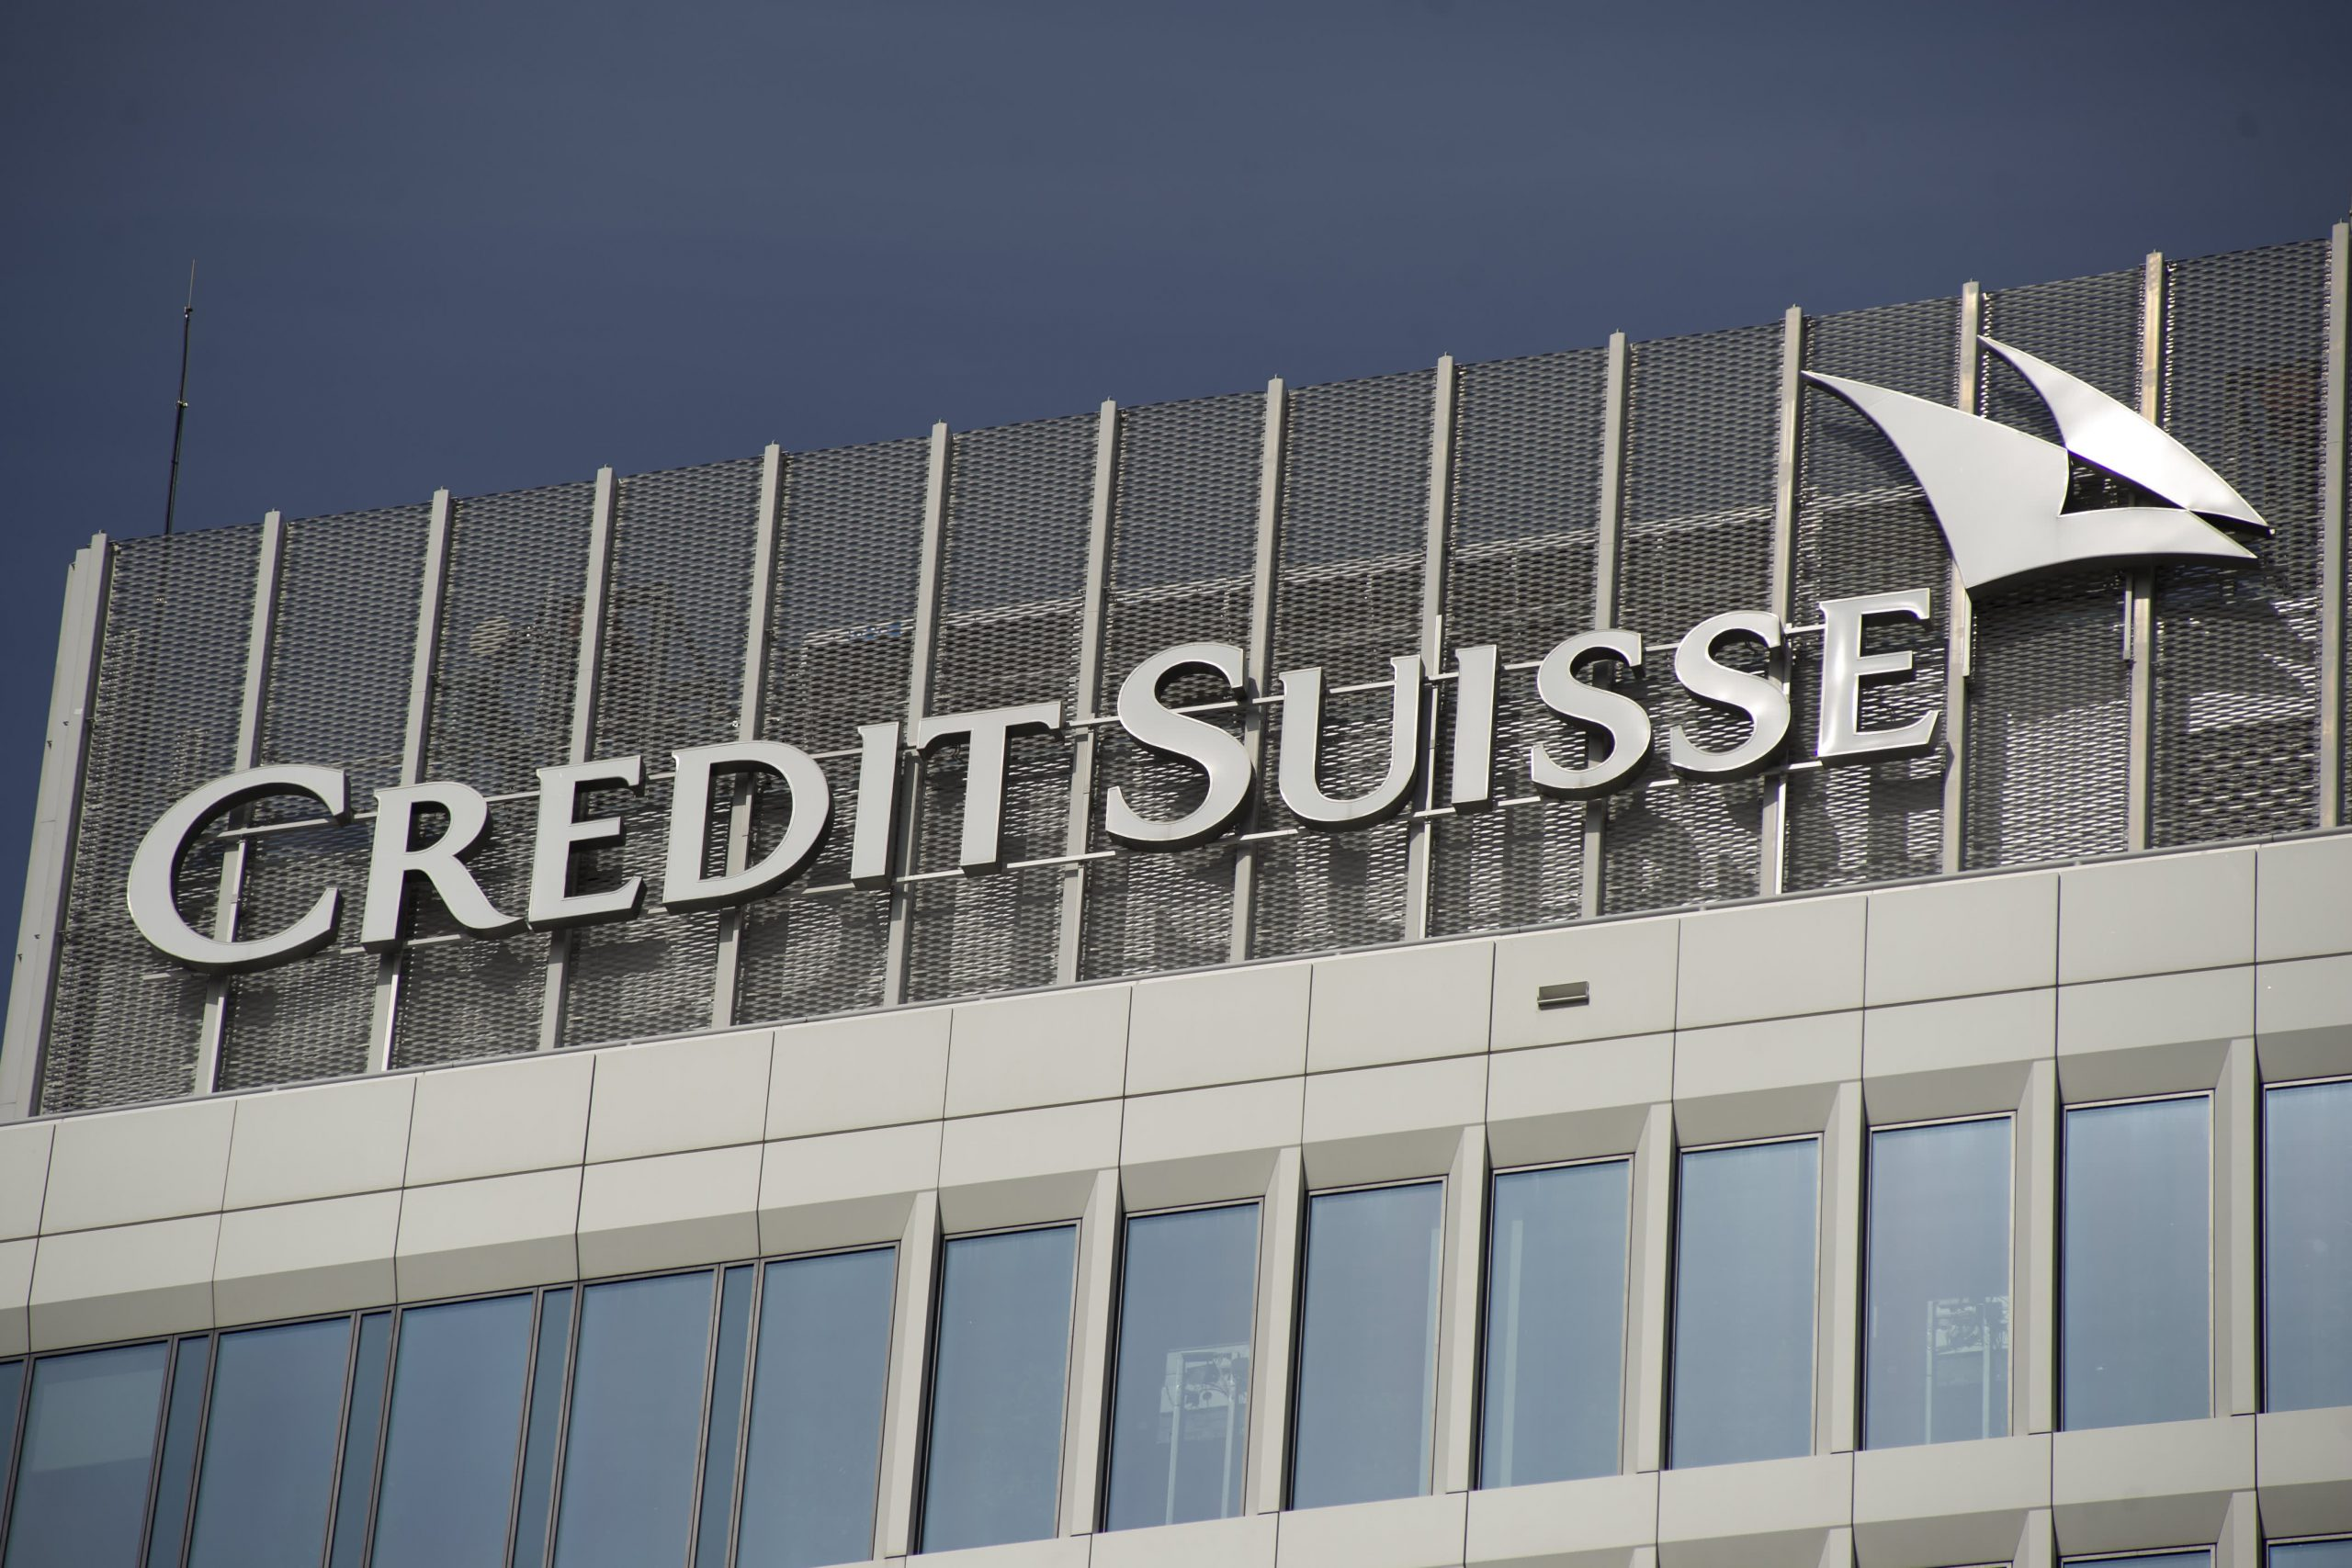 Credit Suisse is giving junior bankers special $20,000 bonuses, raises after Goldman analyst revolt